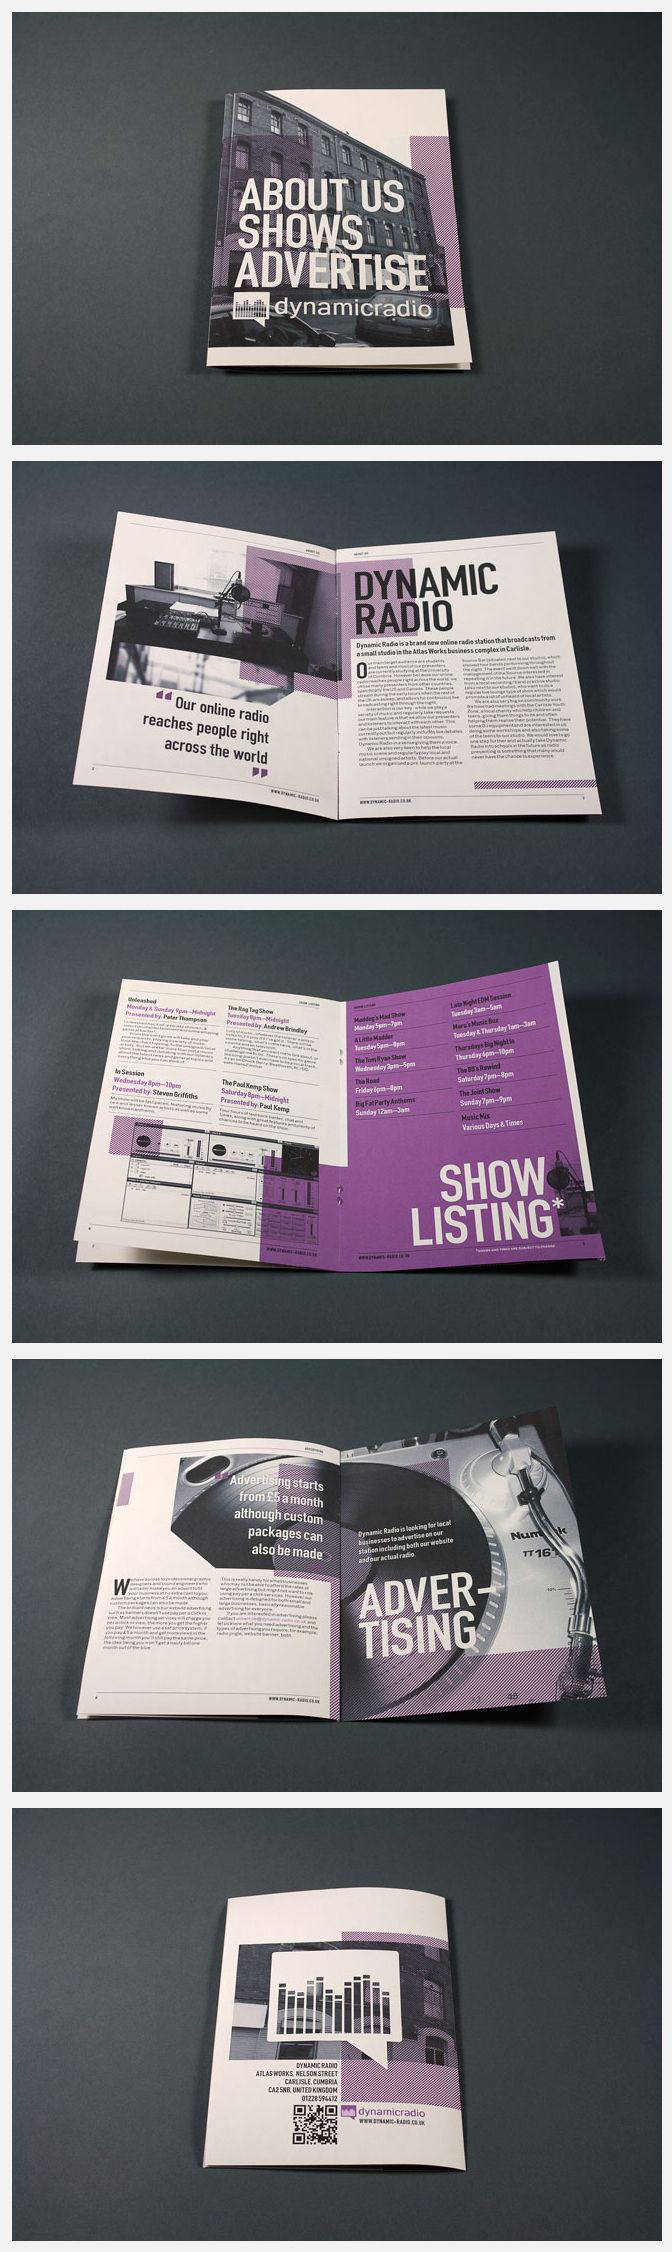 Dynamic Radio Advertising Booklet #layout #publication #booklet